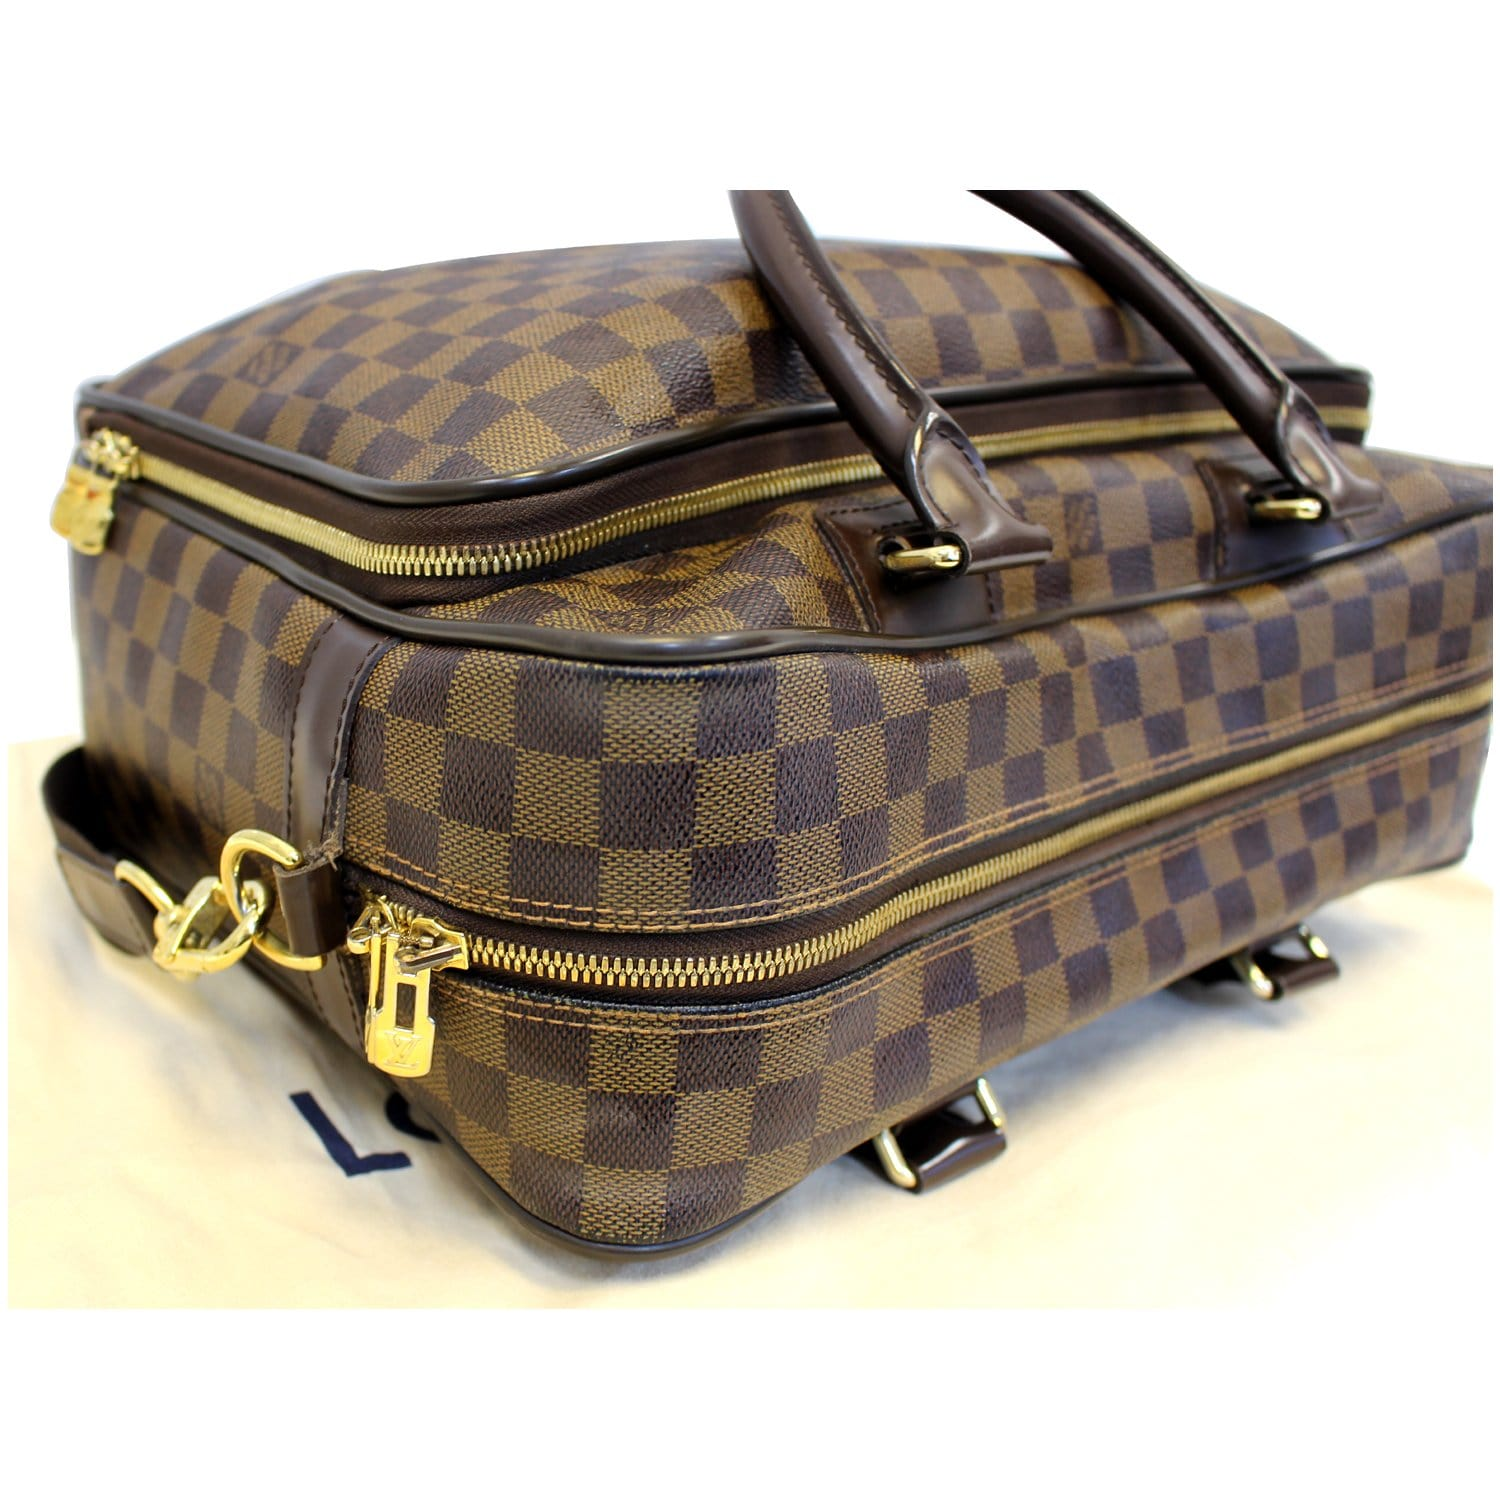 4a0b240a LOUIS VUITTON Icare Damier Ebene Travel Bag-US